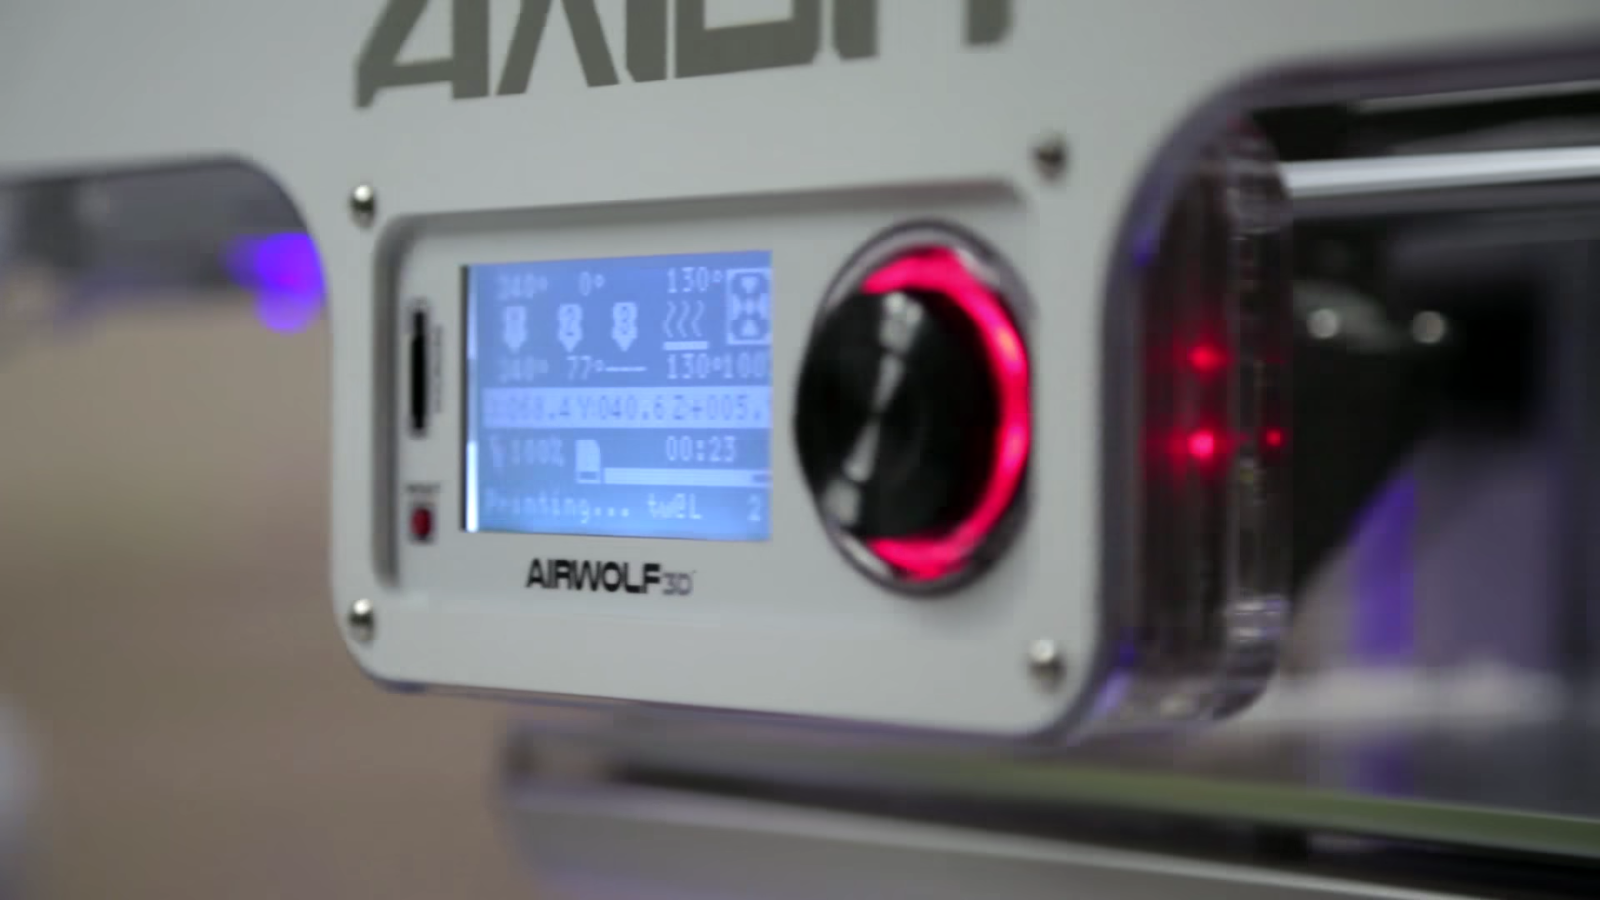 Airwolf Axiom 3D printer used by Service King. Image via Blackstone.